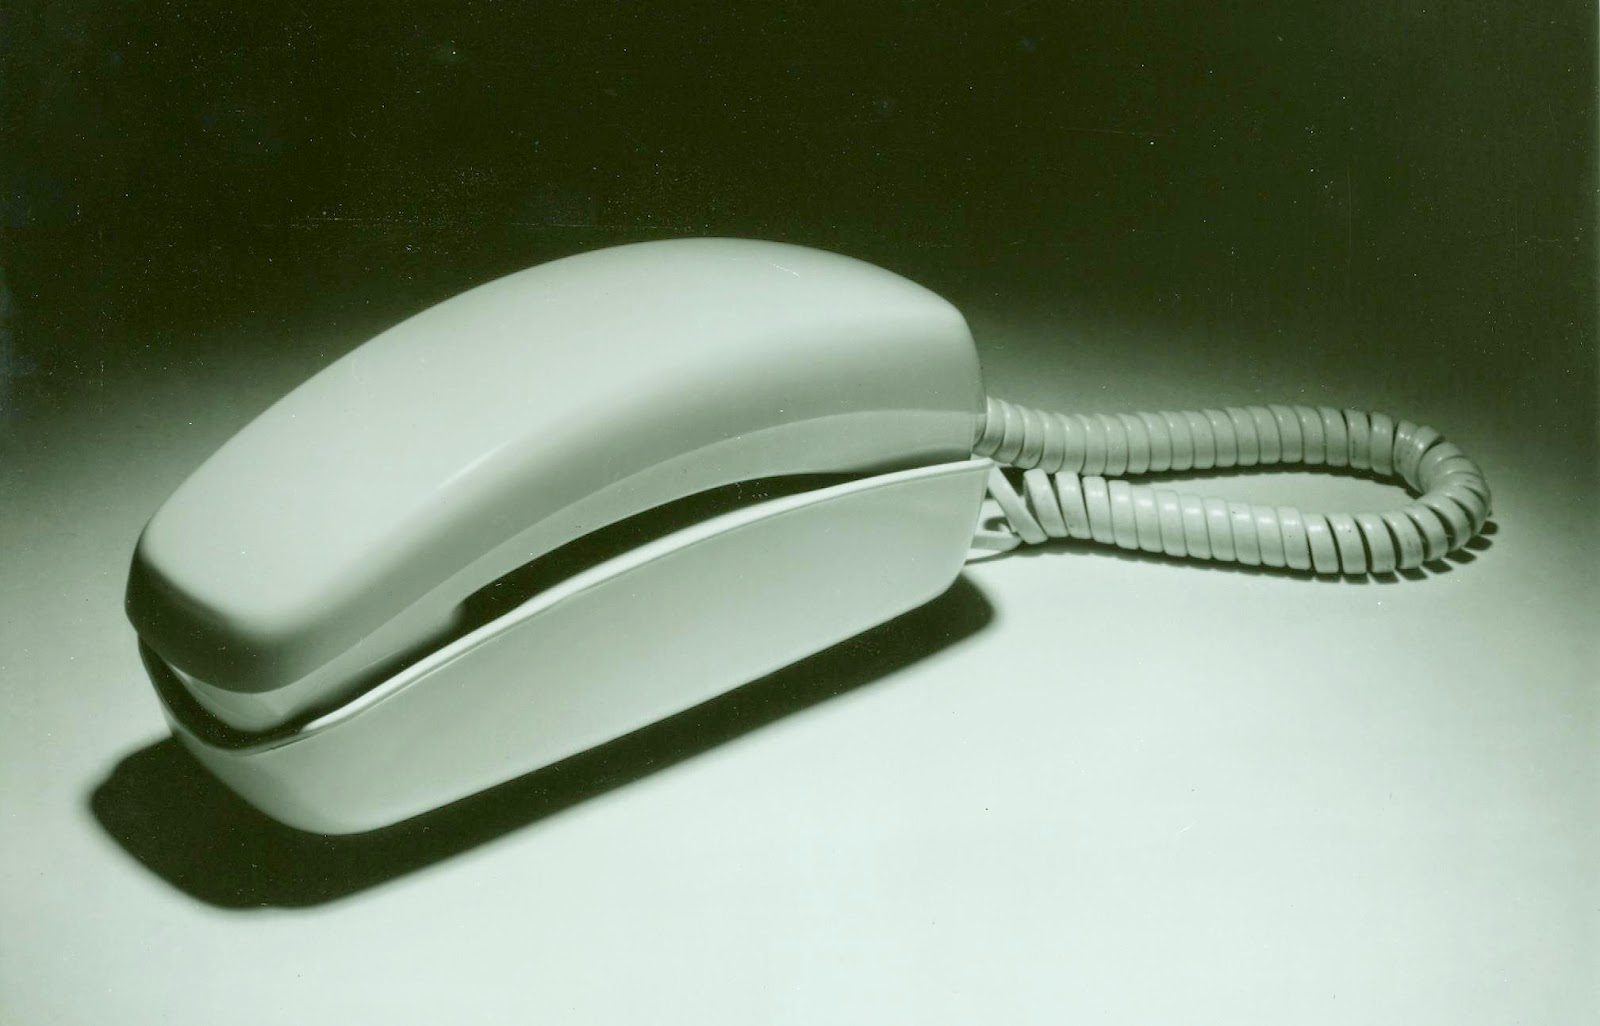 http://commons.wikimedia.org/wiki/File:Trimline_phone.jpg